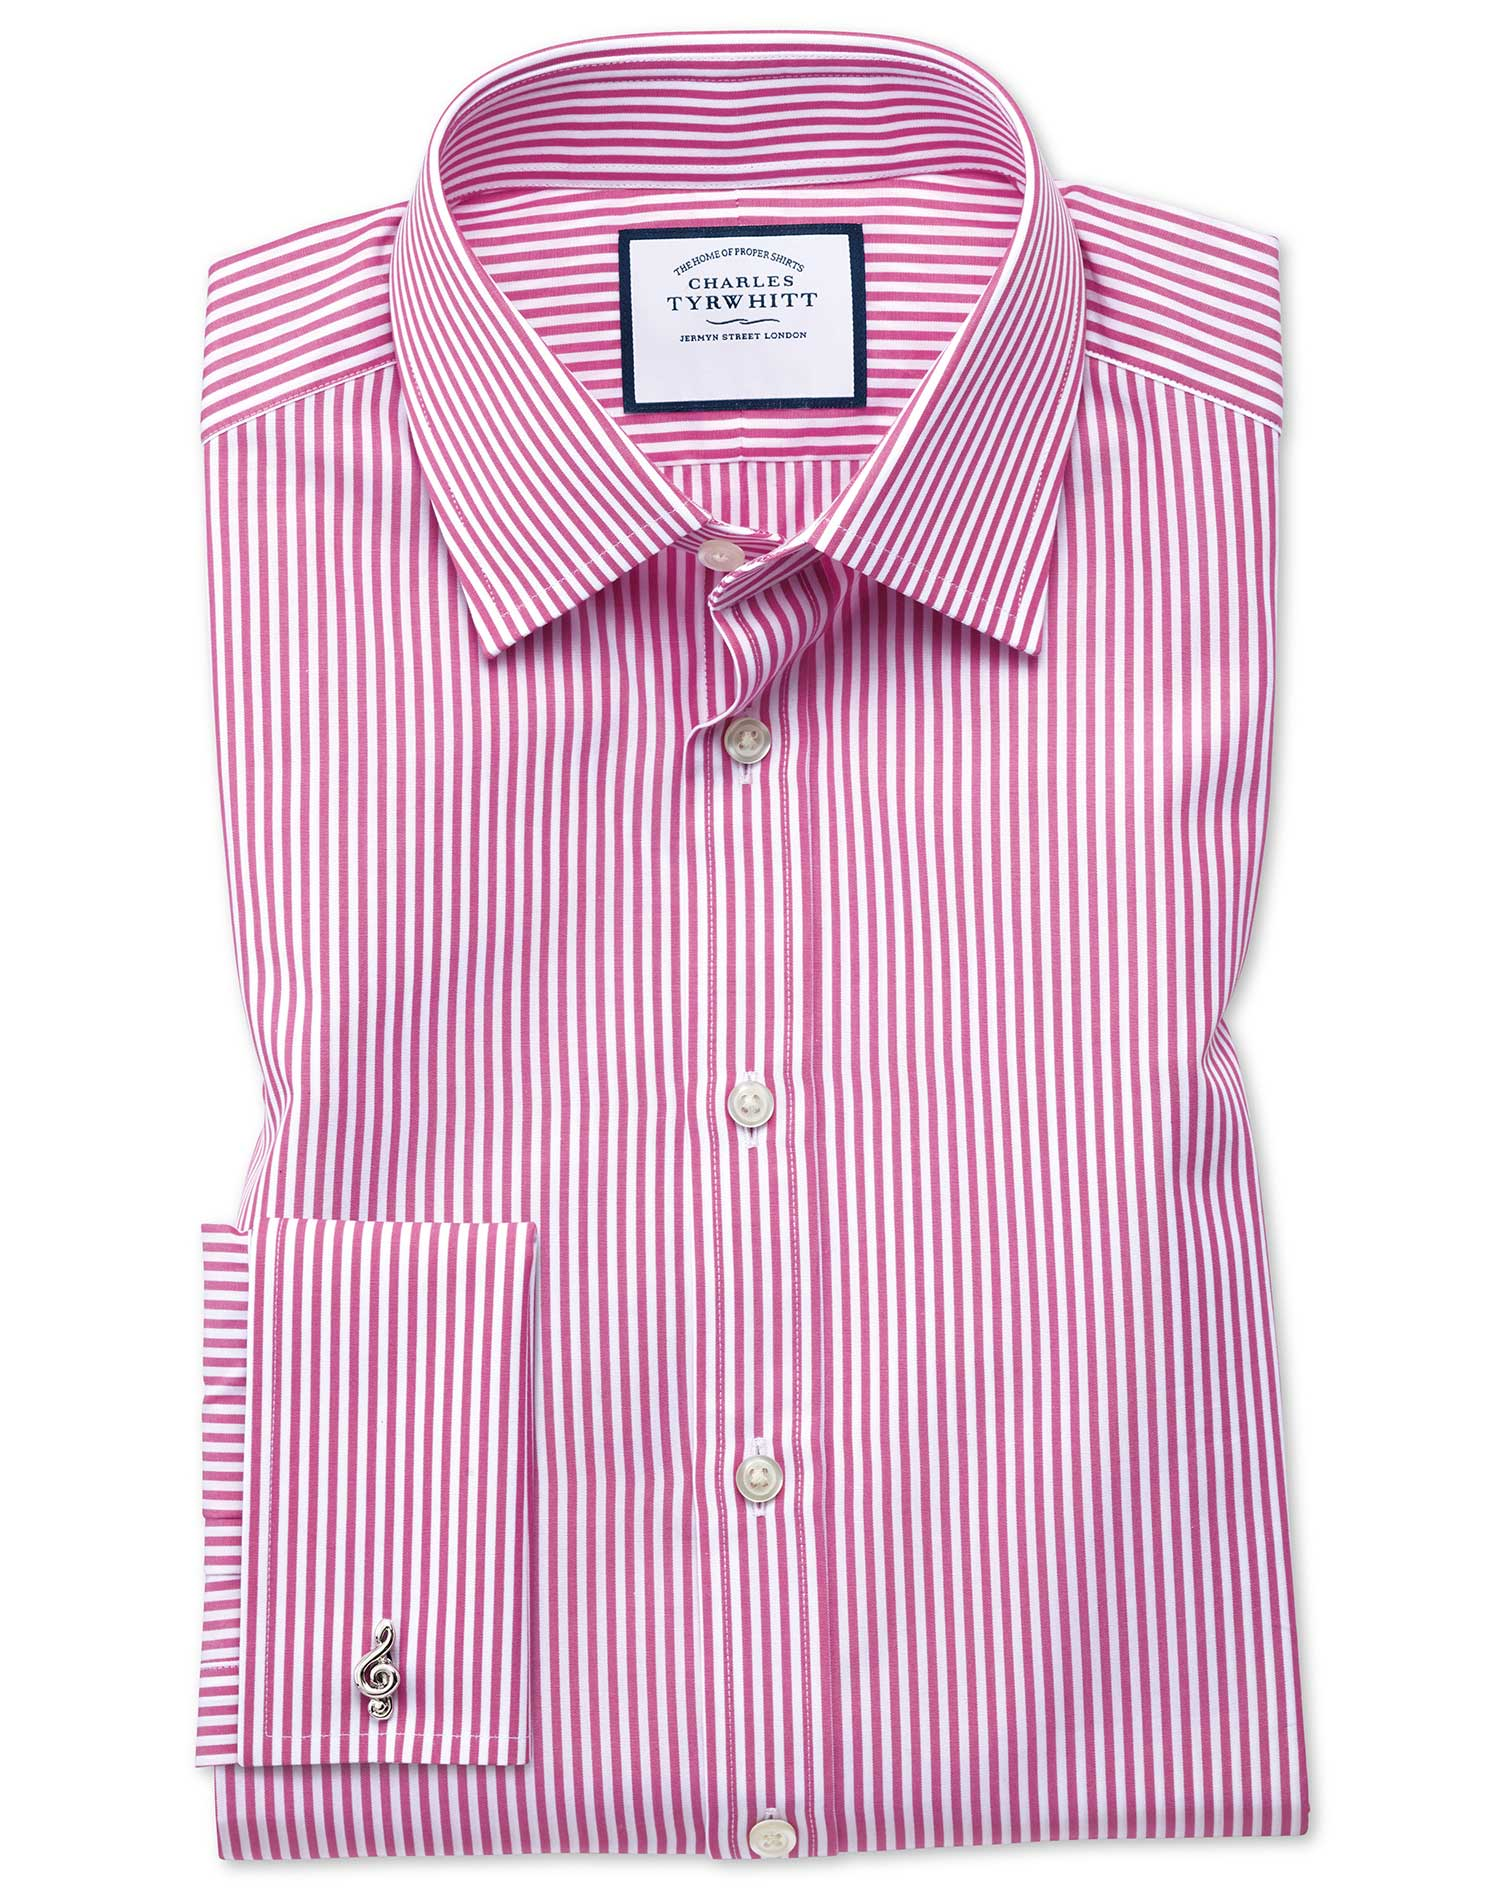 Classic Fit Bengal Stripe Pink Cotton Formal Shirt Single Cuff Size 17.5/35 by Charles Tyrwhitt